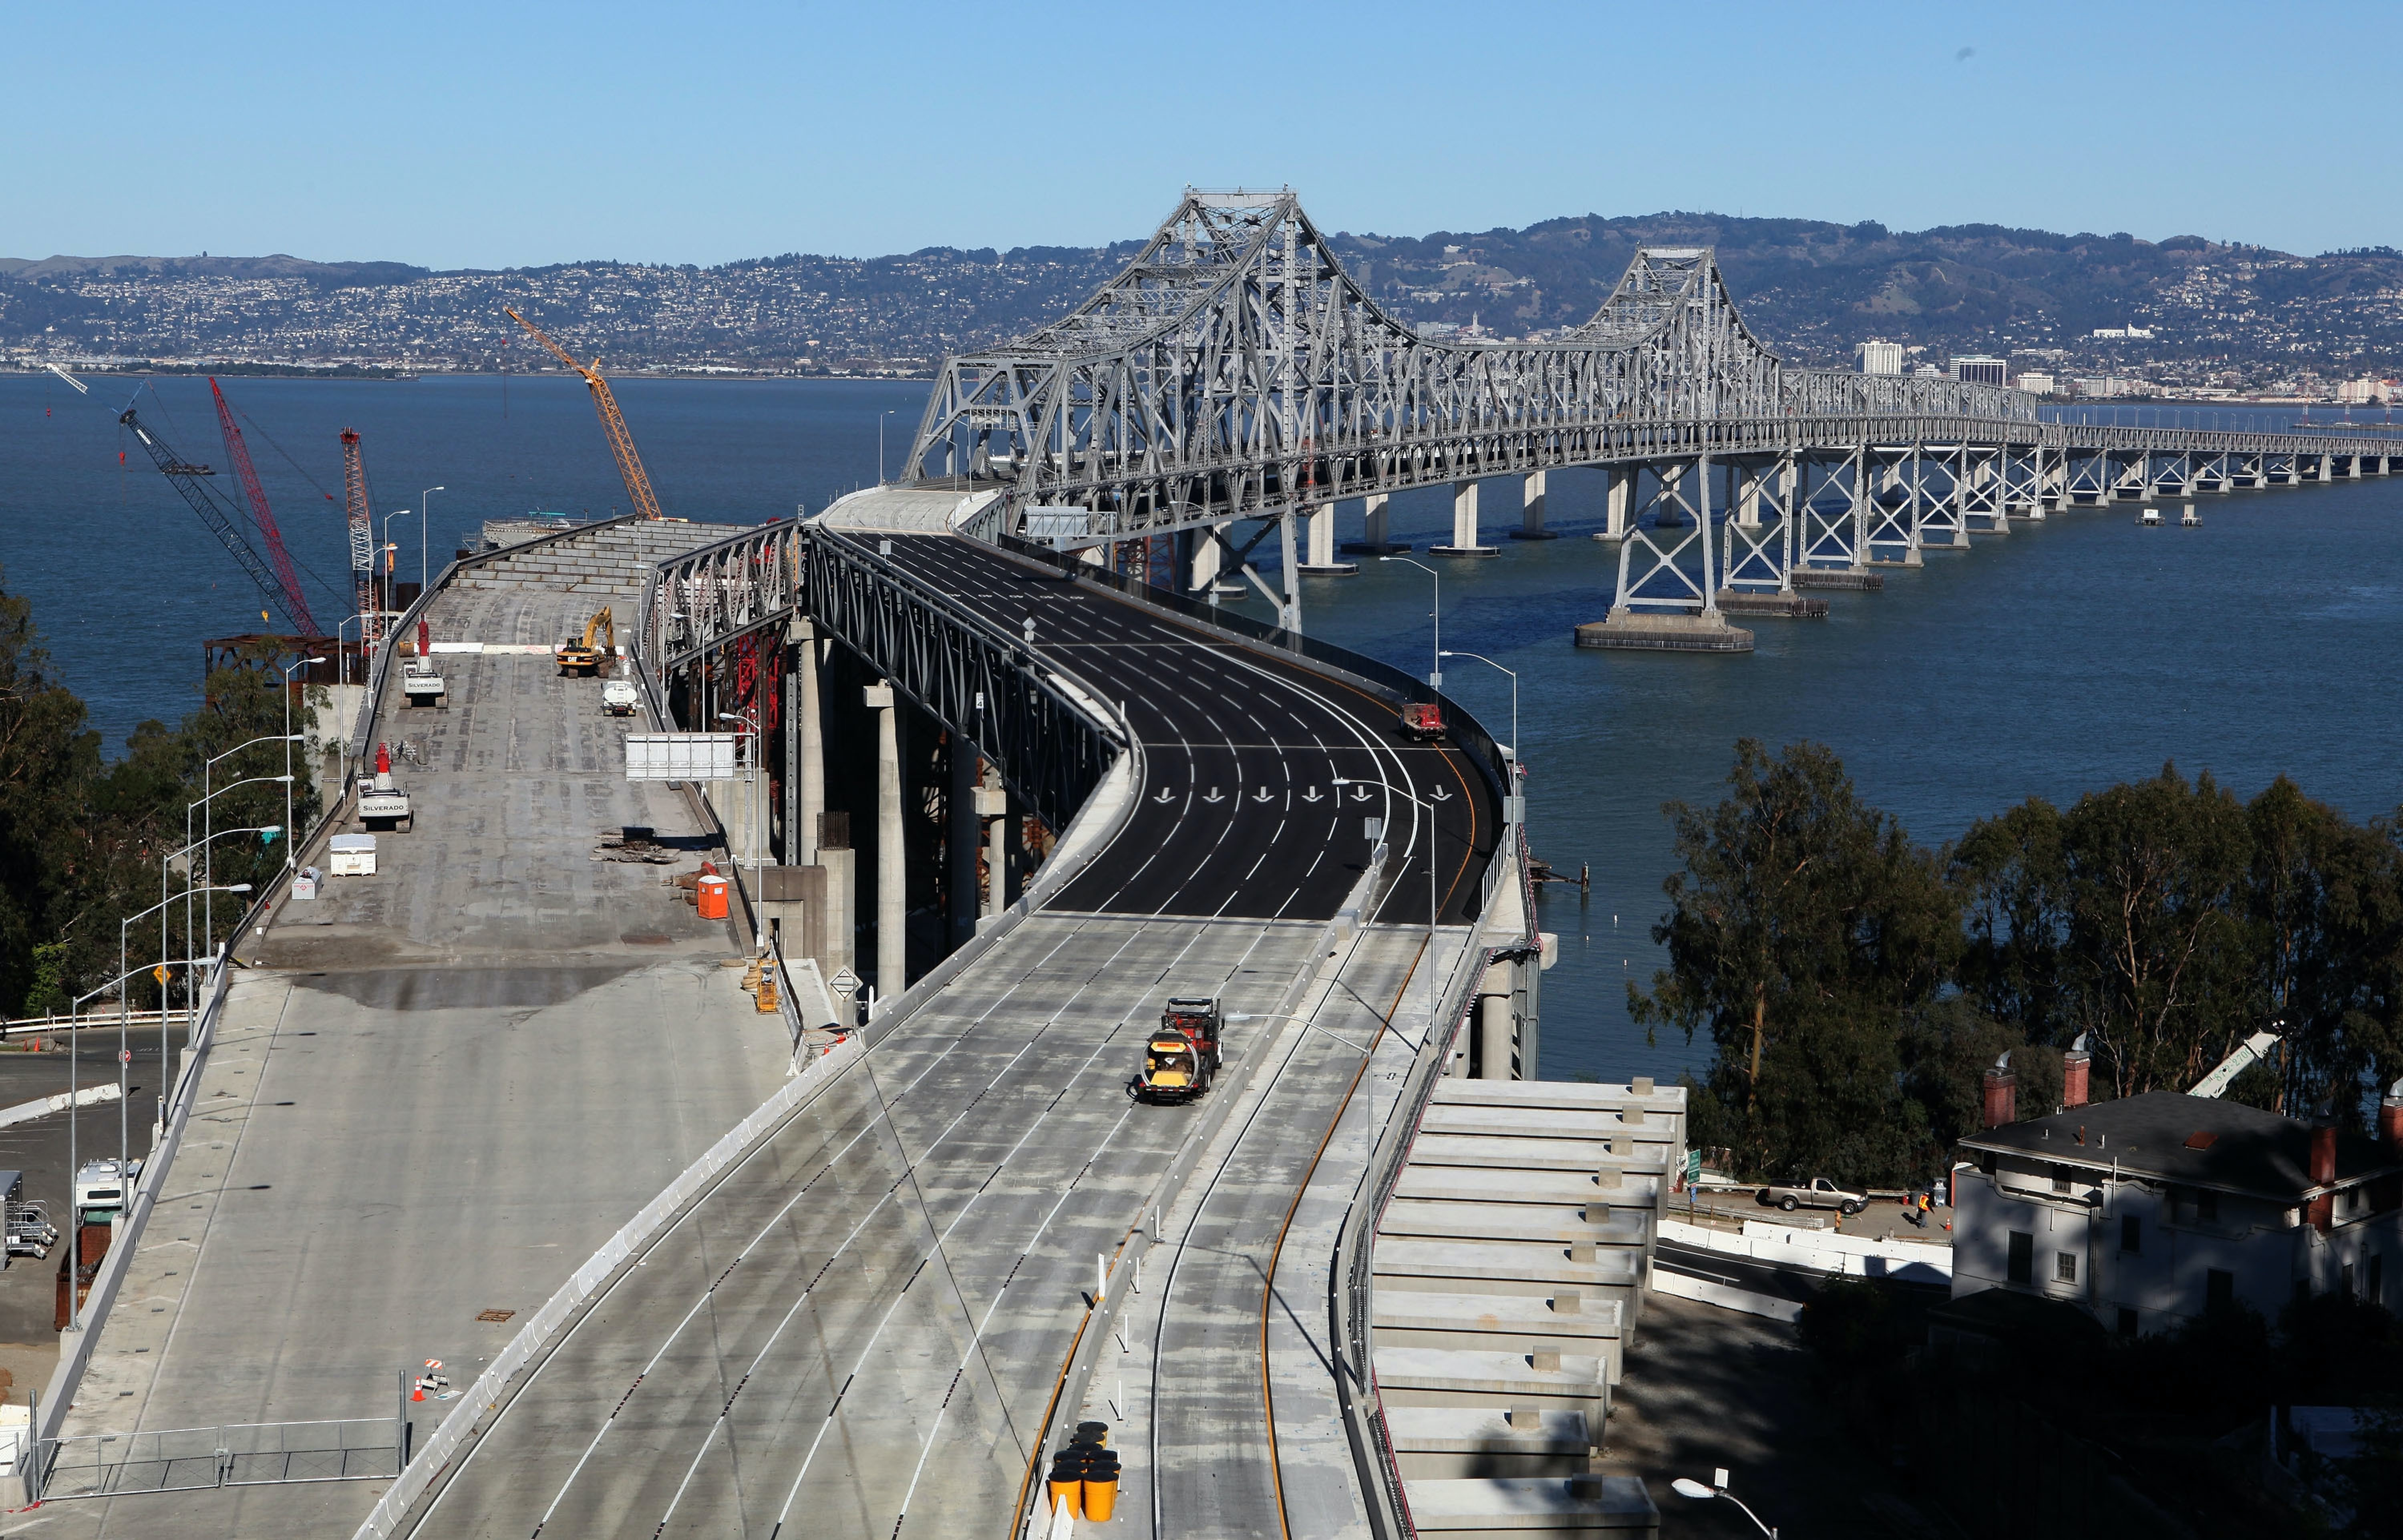 The Bay Bridge reconstruction as seen from the ground in 2009.